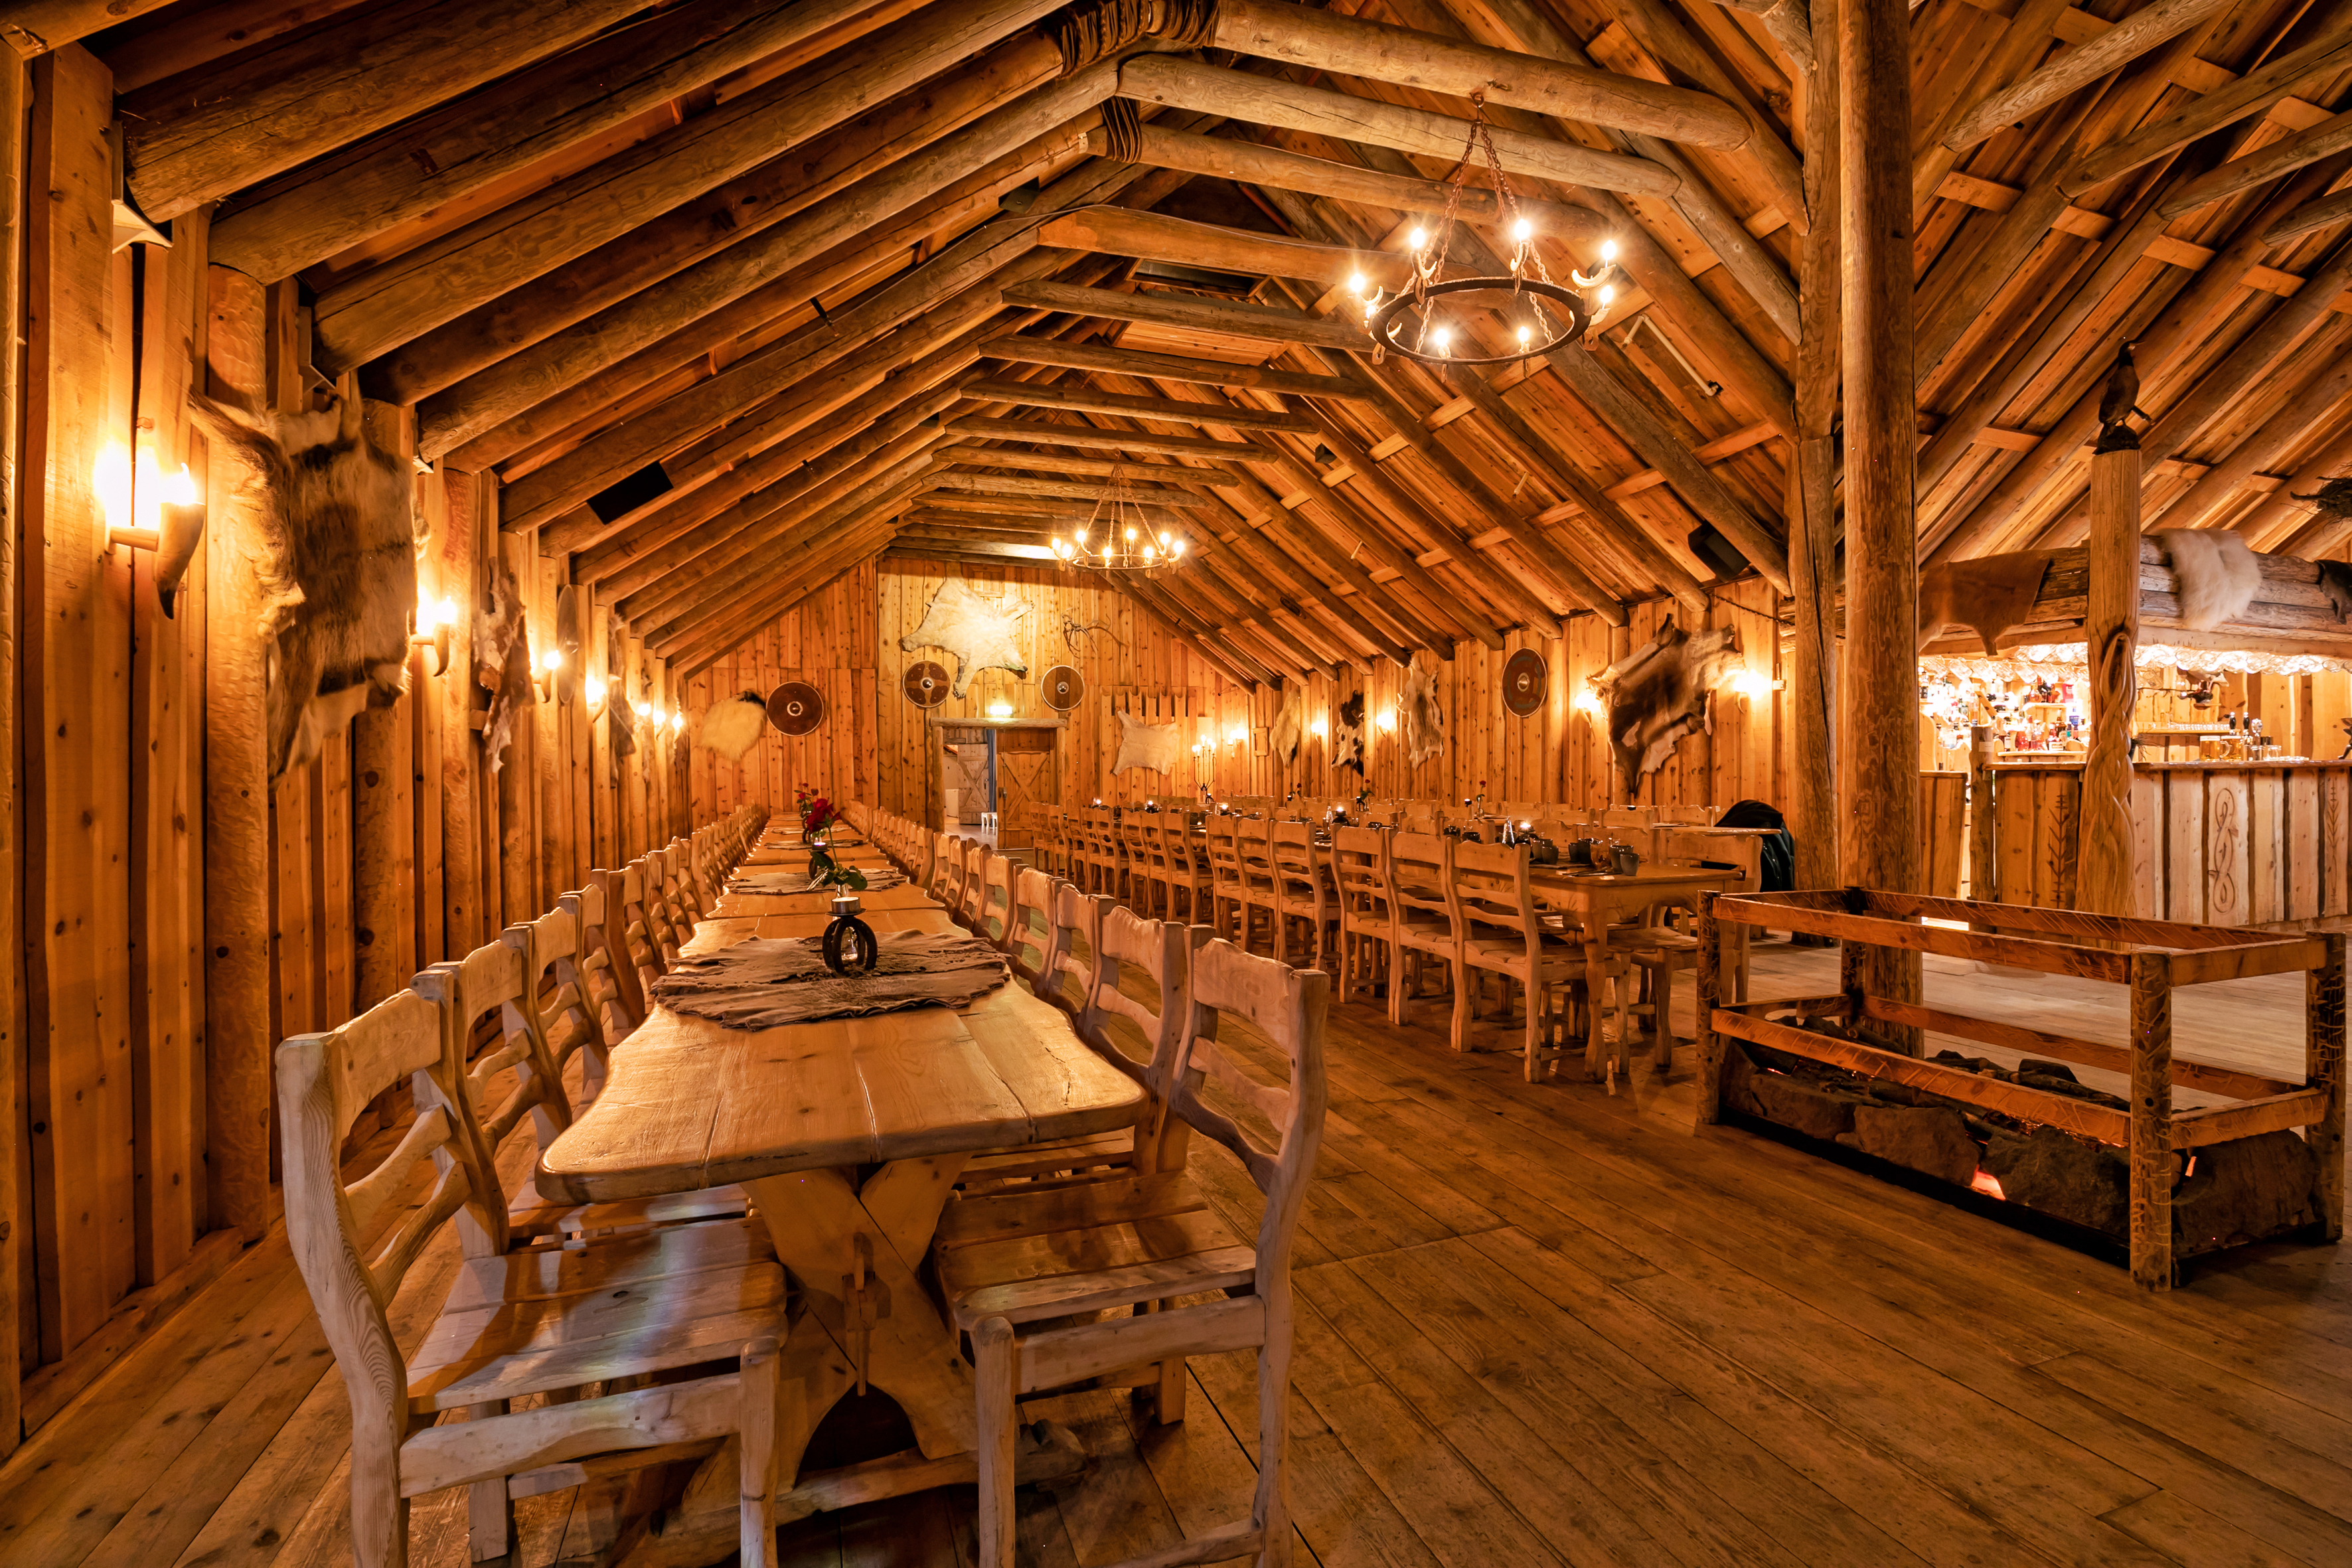 Book a dinner at the Ingólfsskáli longhouse and be transported back to the Viking Golden Age.